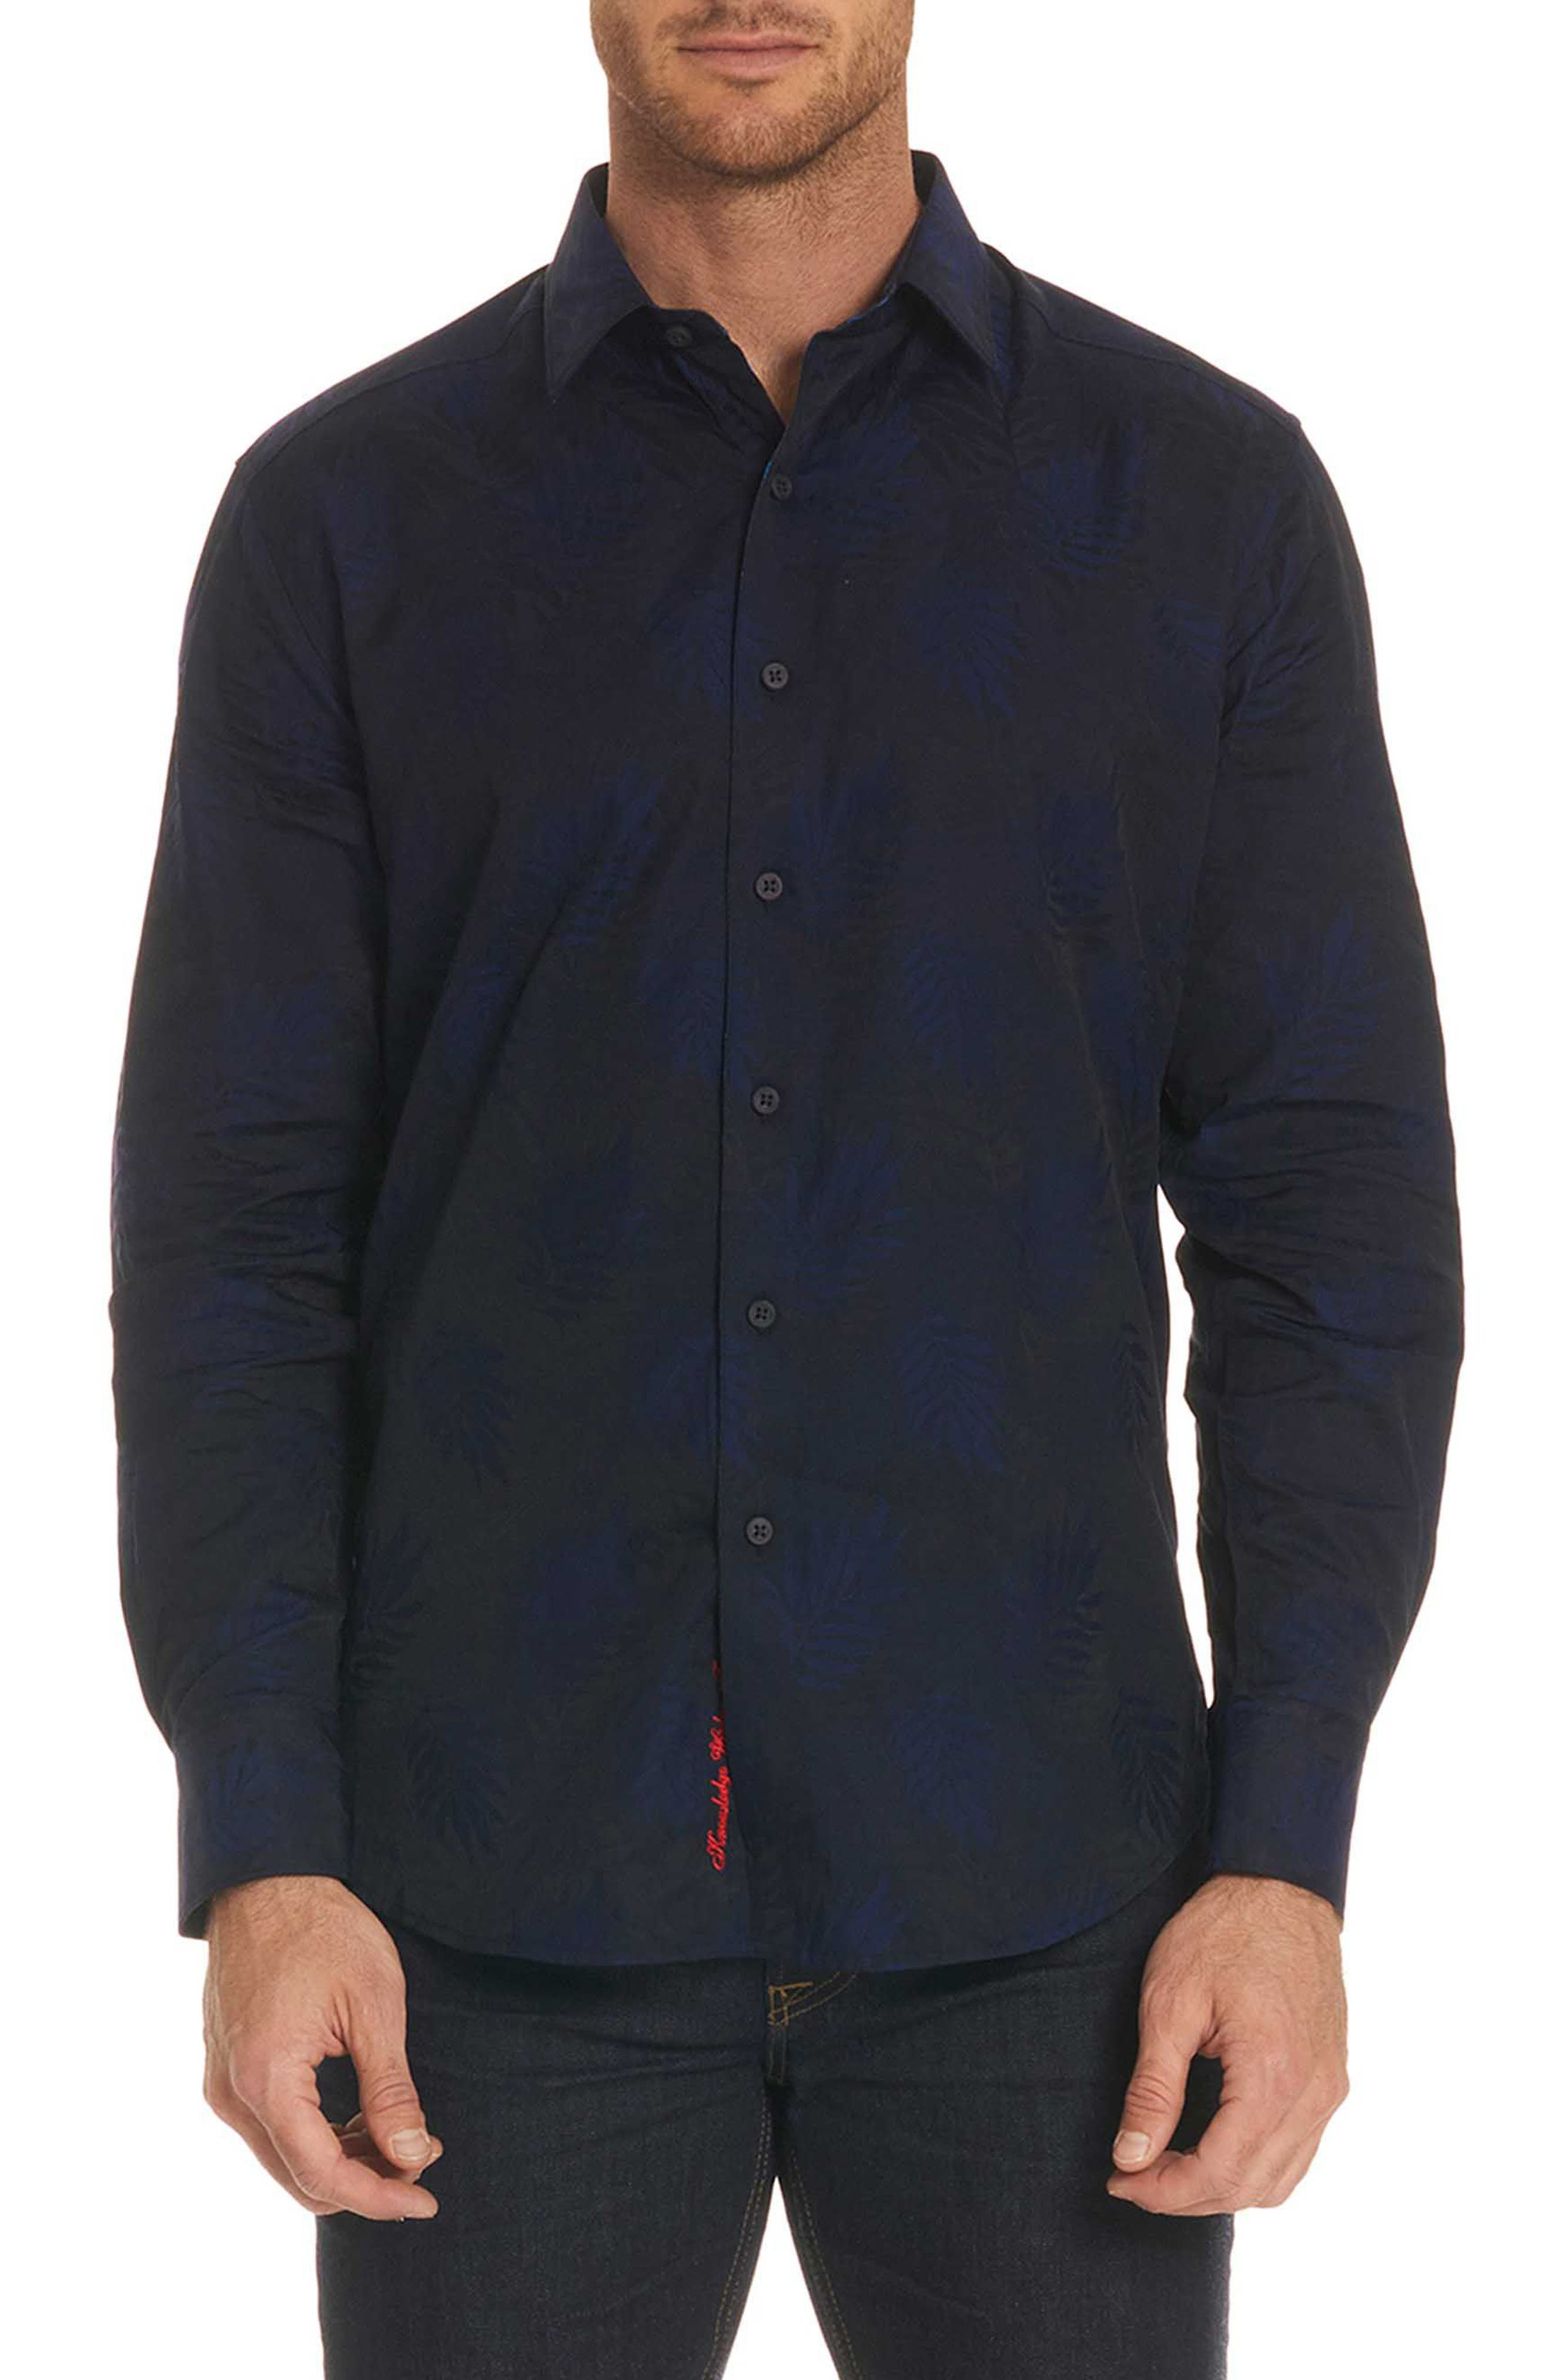 Monte Classic Fit Sport Shirt,                             Main thumbnail 1, color,                             Midnight Navy